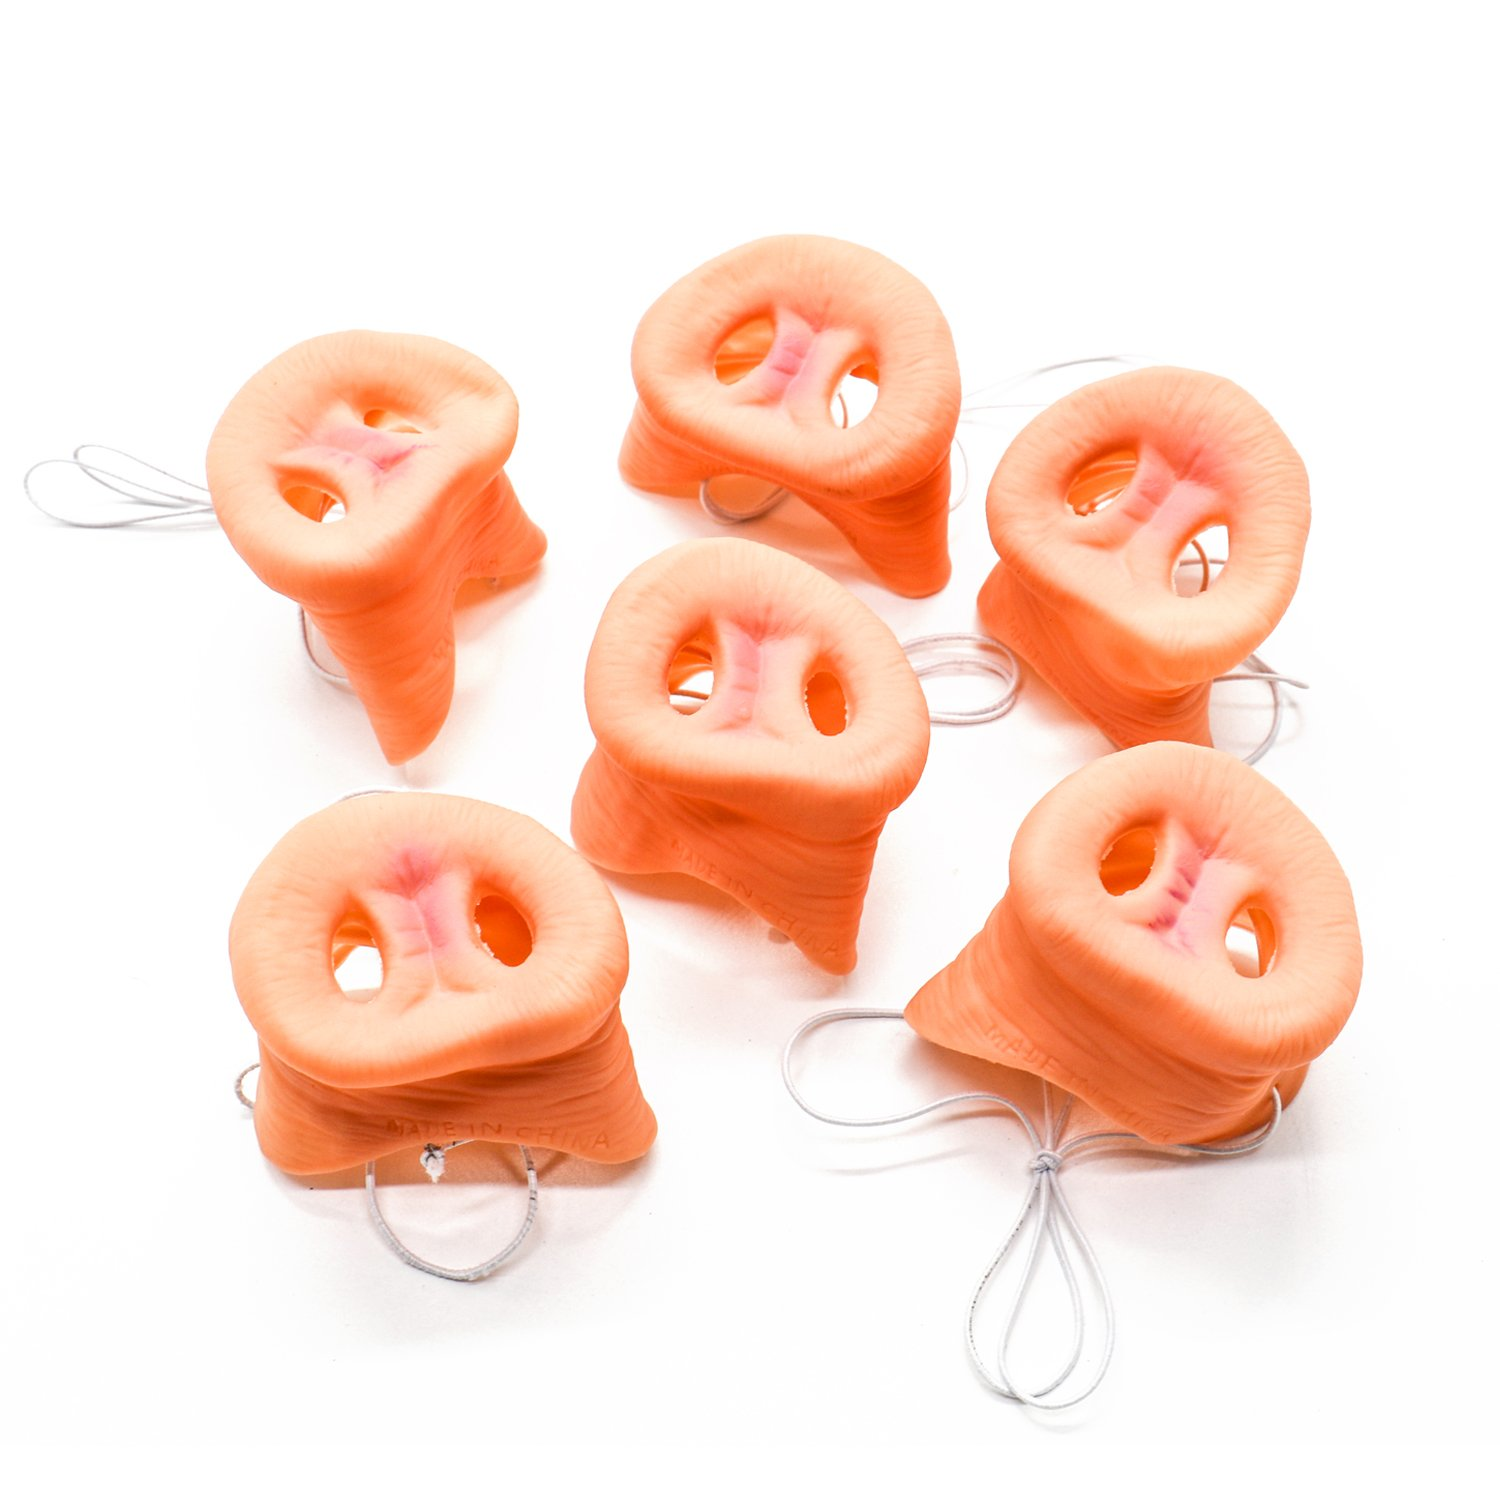 IDS 6 Pcs Pig Nose With Elastic Band Costume Animal Mask Holloween Party Prop for Adult